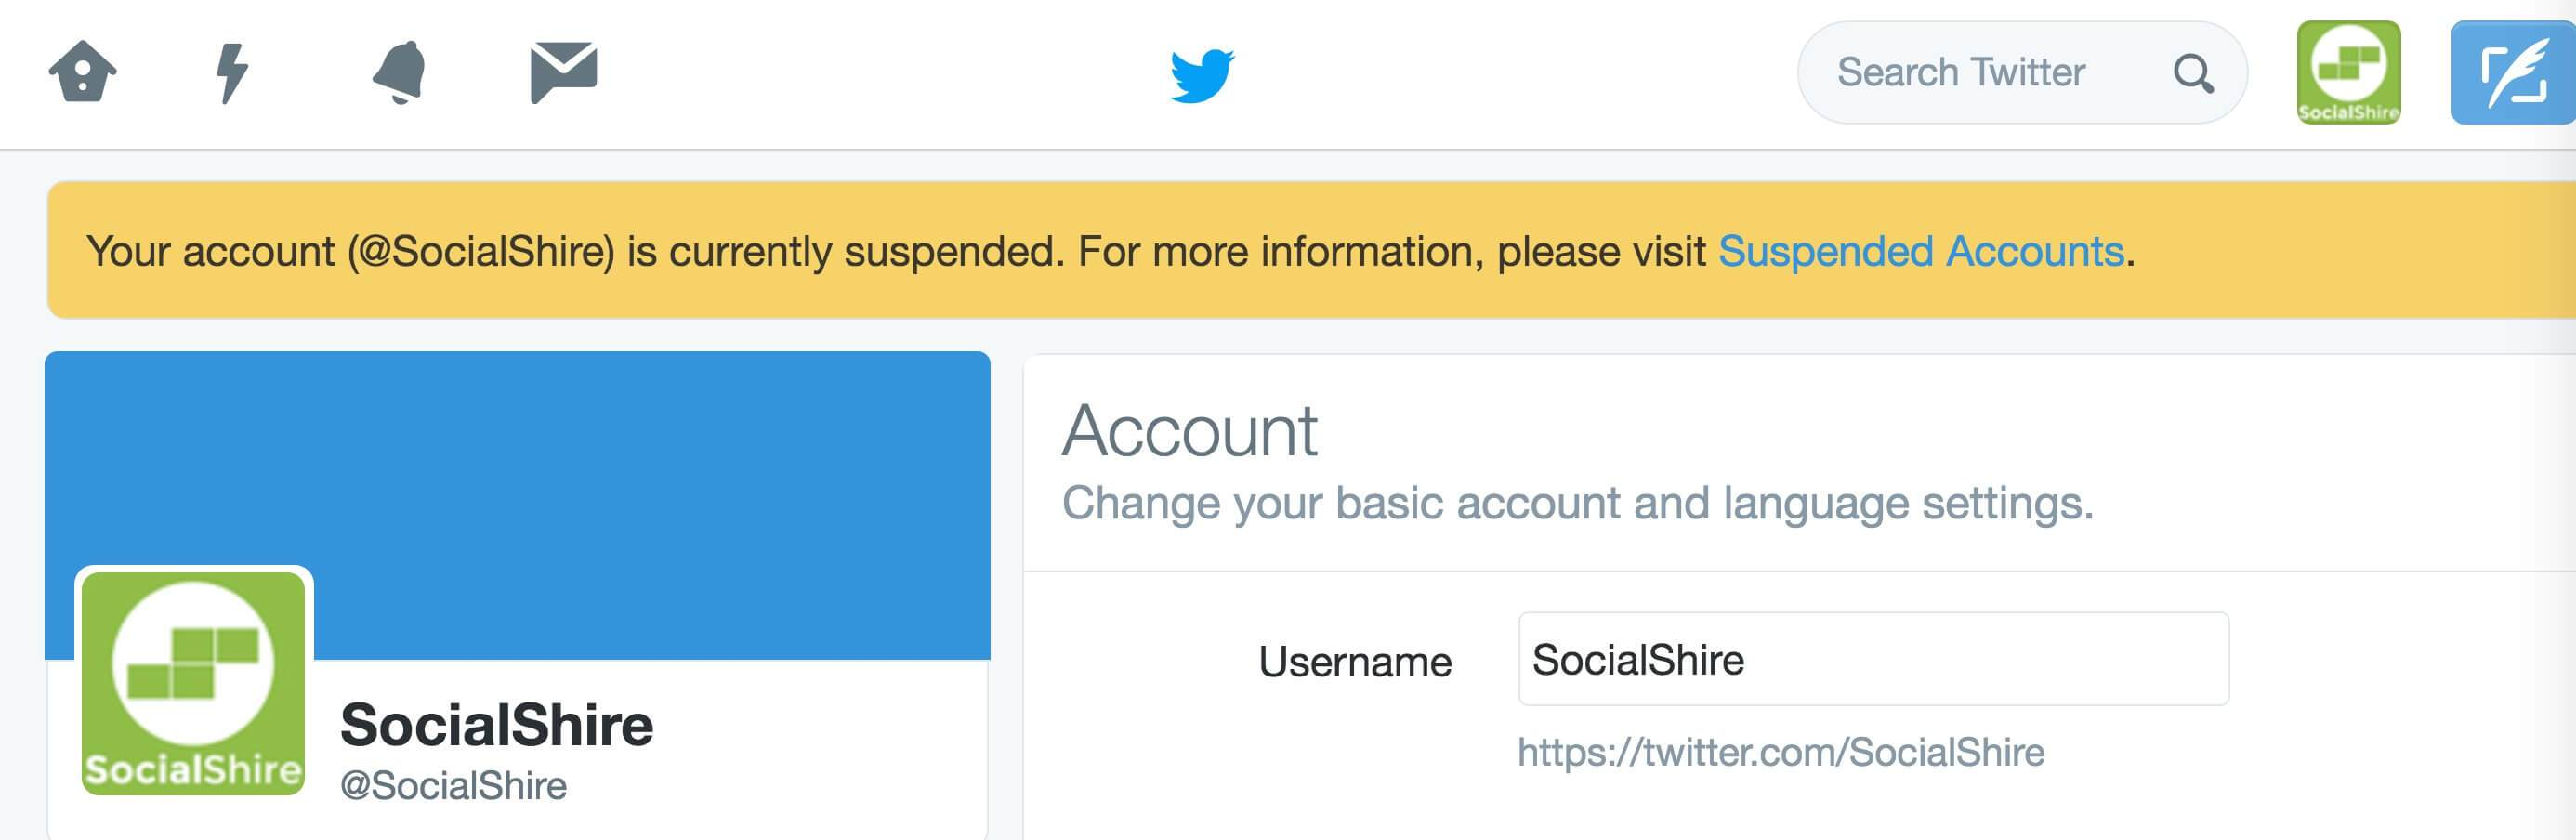 SocialShire Twitter Account Suspended